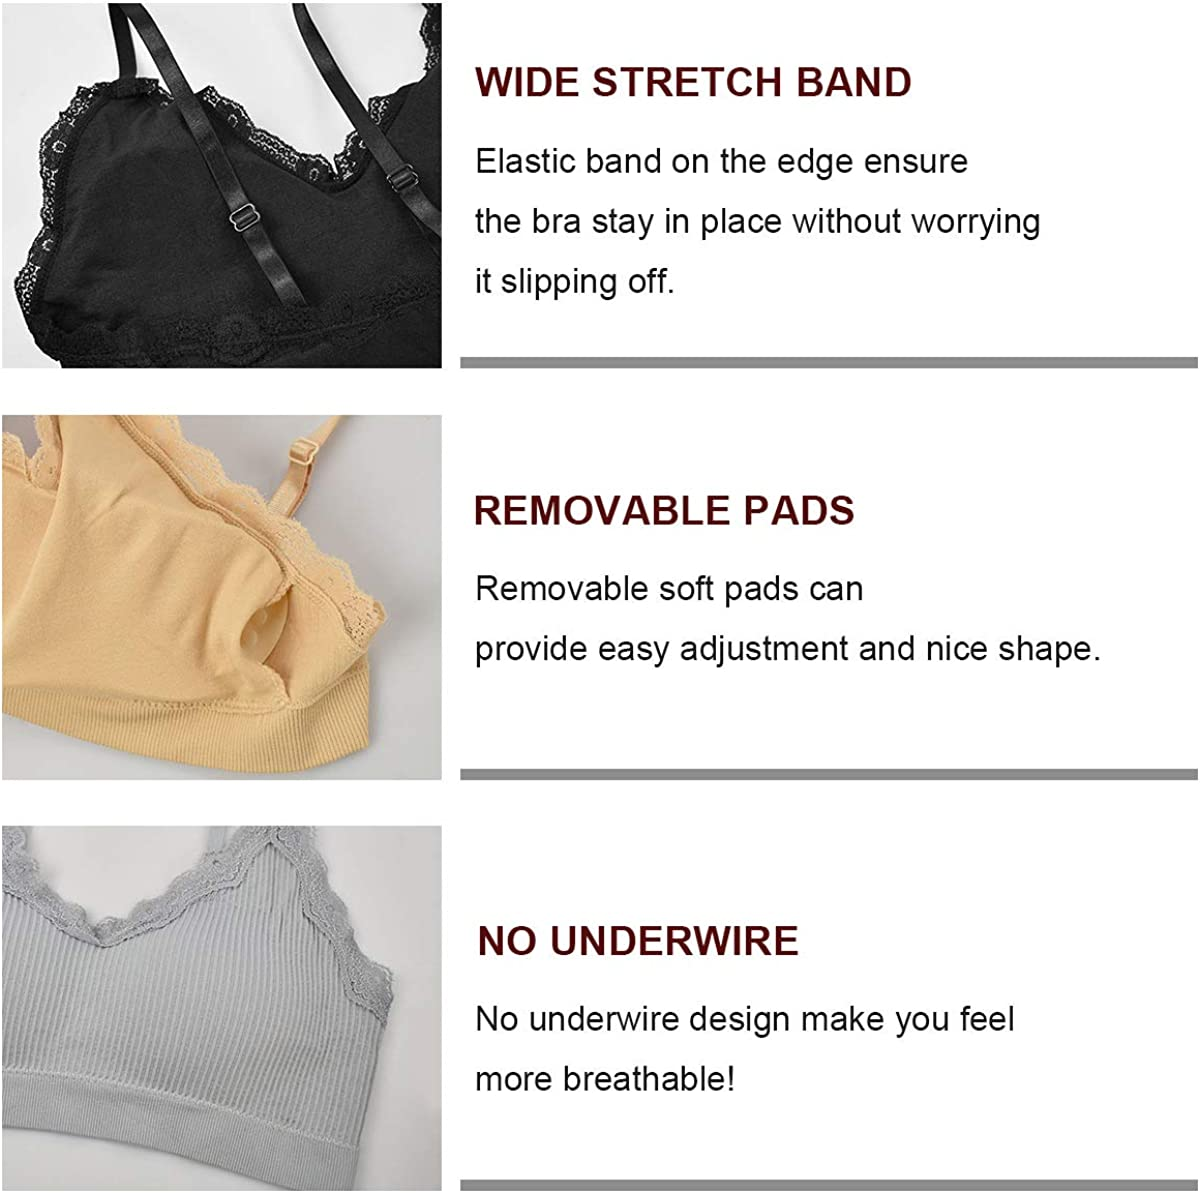 UMIPUBO 4 Pieces V Neck Tube Top Bra Seamless Bralette Straps Padded Camisole Bandeau Sports Bra Sleep Bra Vest Tops with Elastic Straps for Women Girls